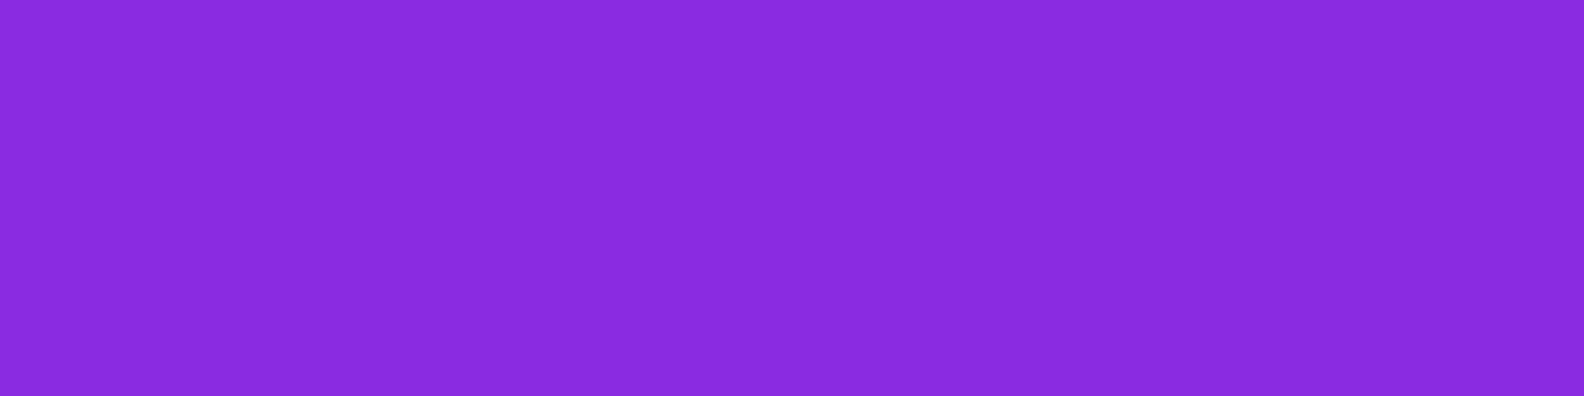 1584x396 Blue-violet Solid Color Background